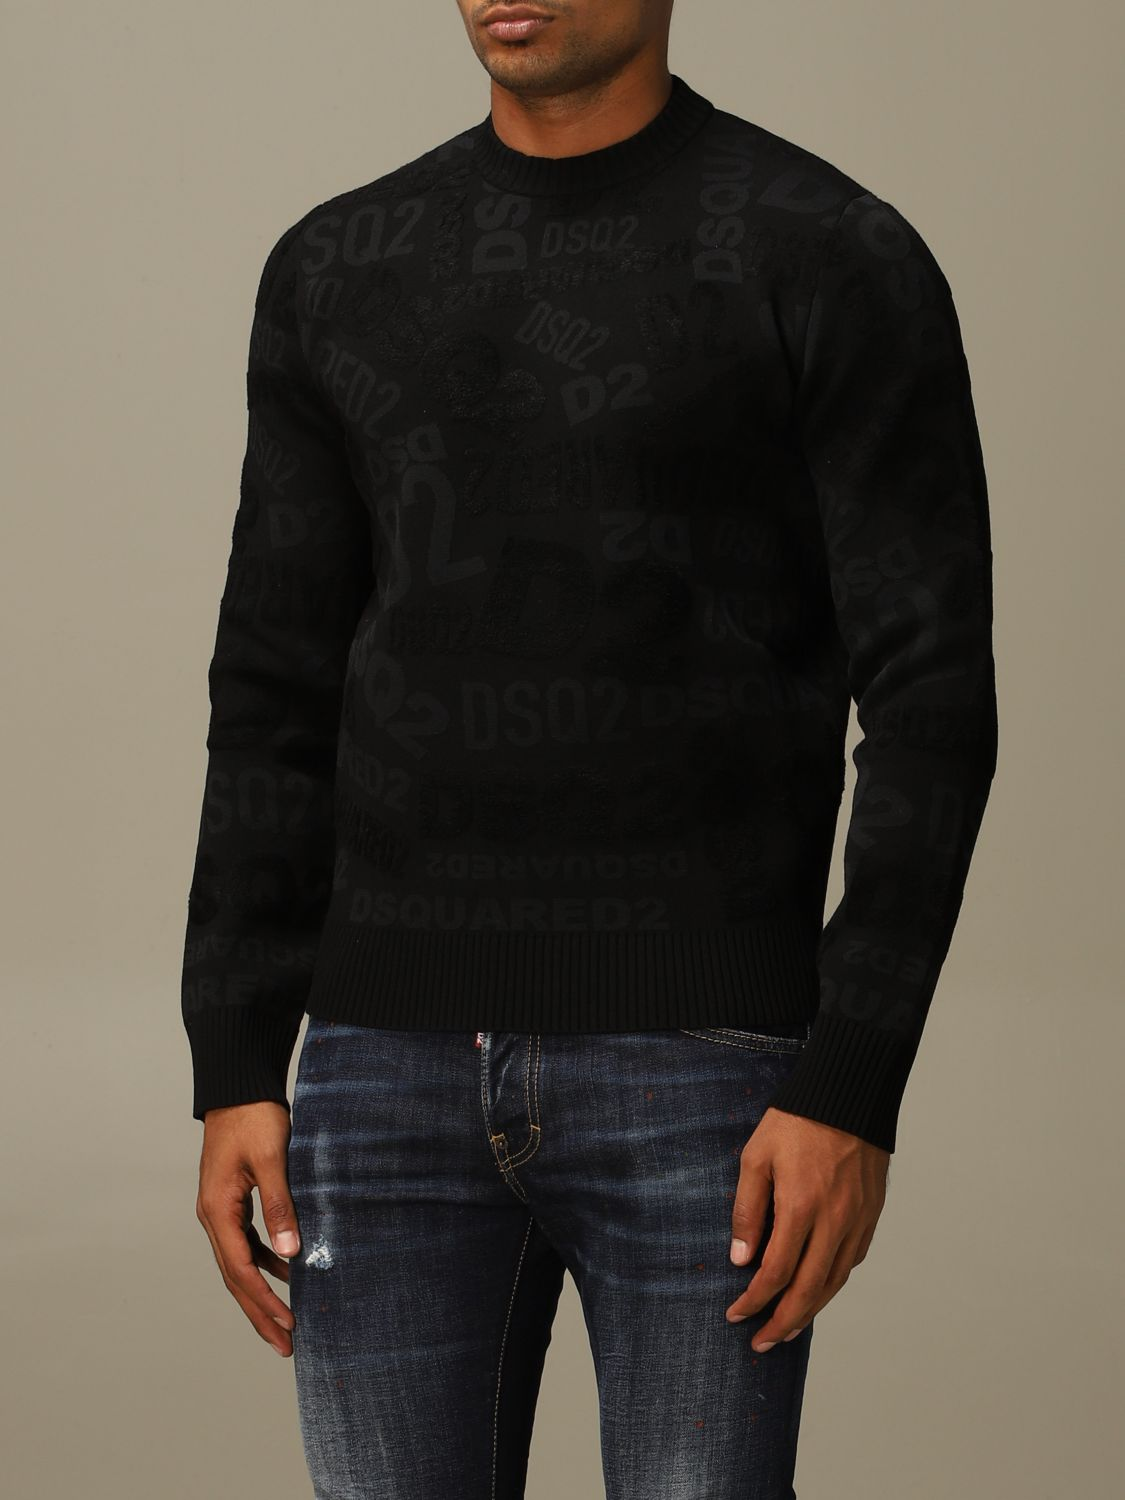 Jumper Dsquared2: Jumper men Dsquared2 black 3